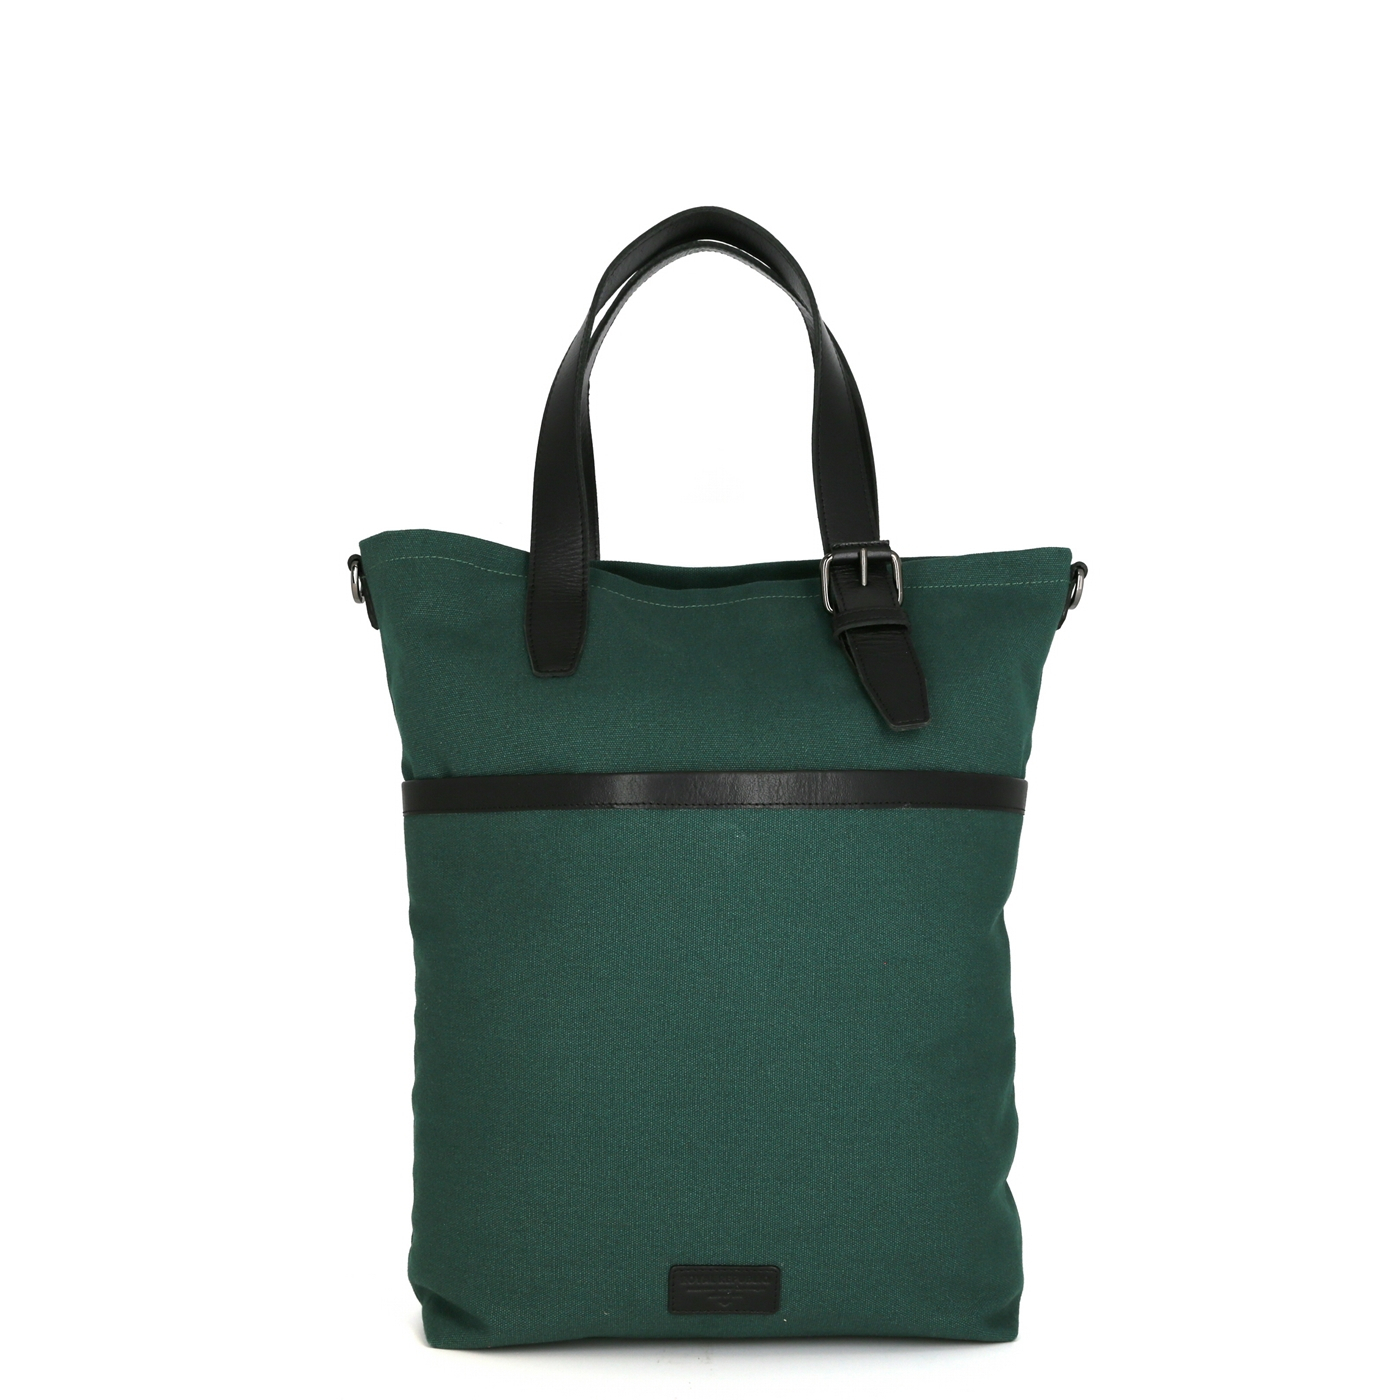 Bilde av Bridge 194 Handbag 3 308 001 194 24 070030